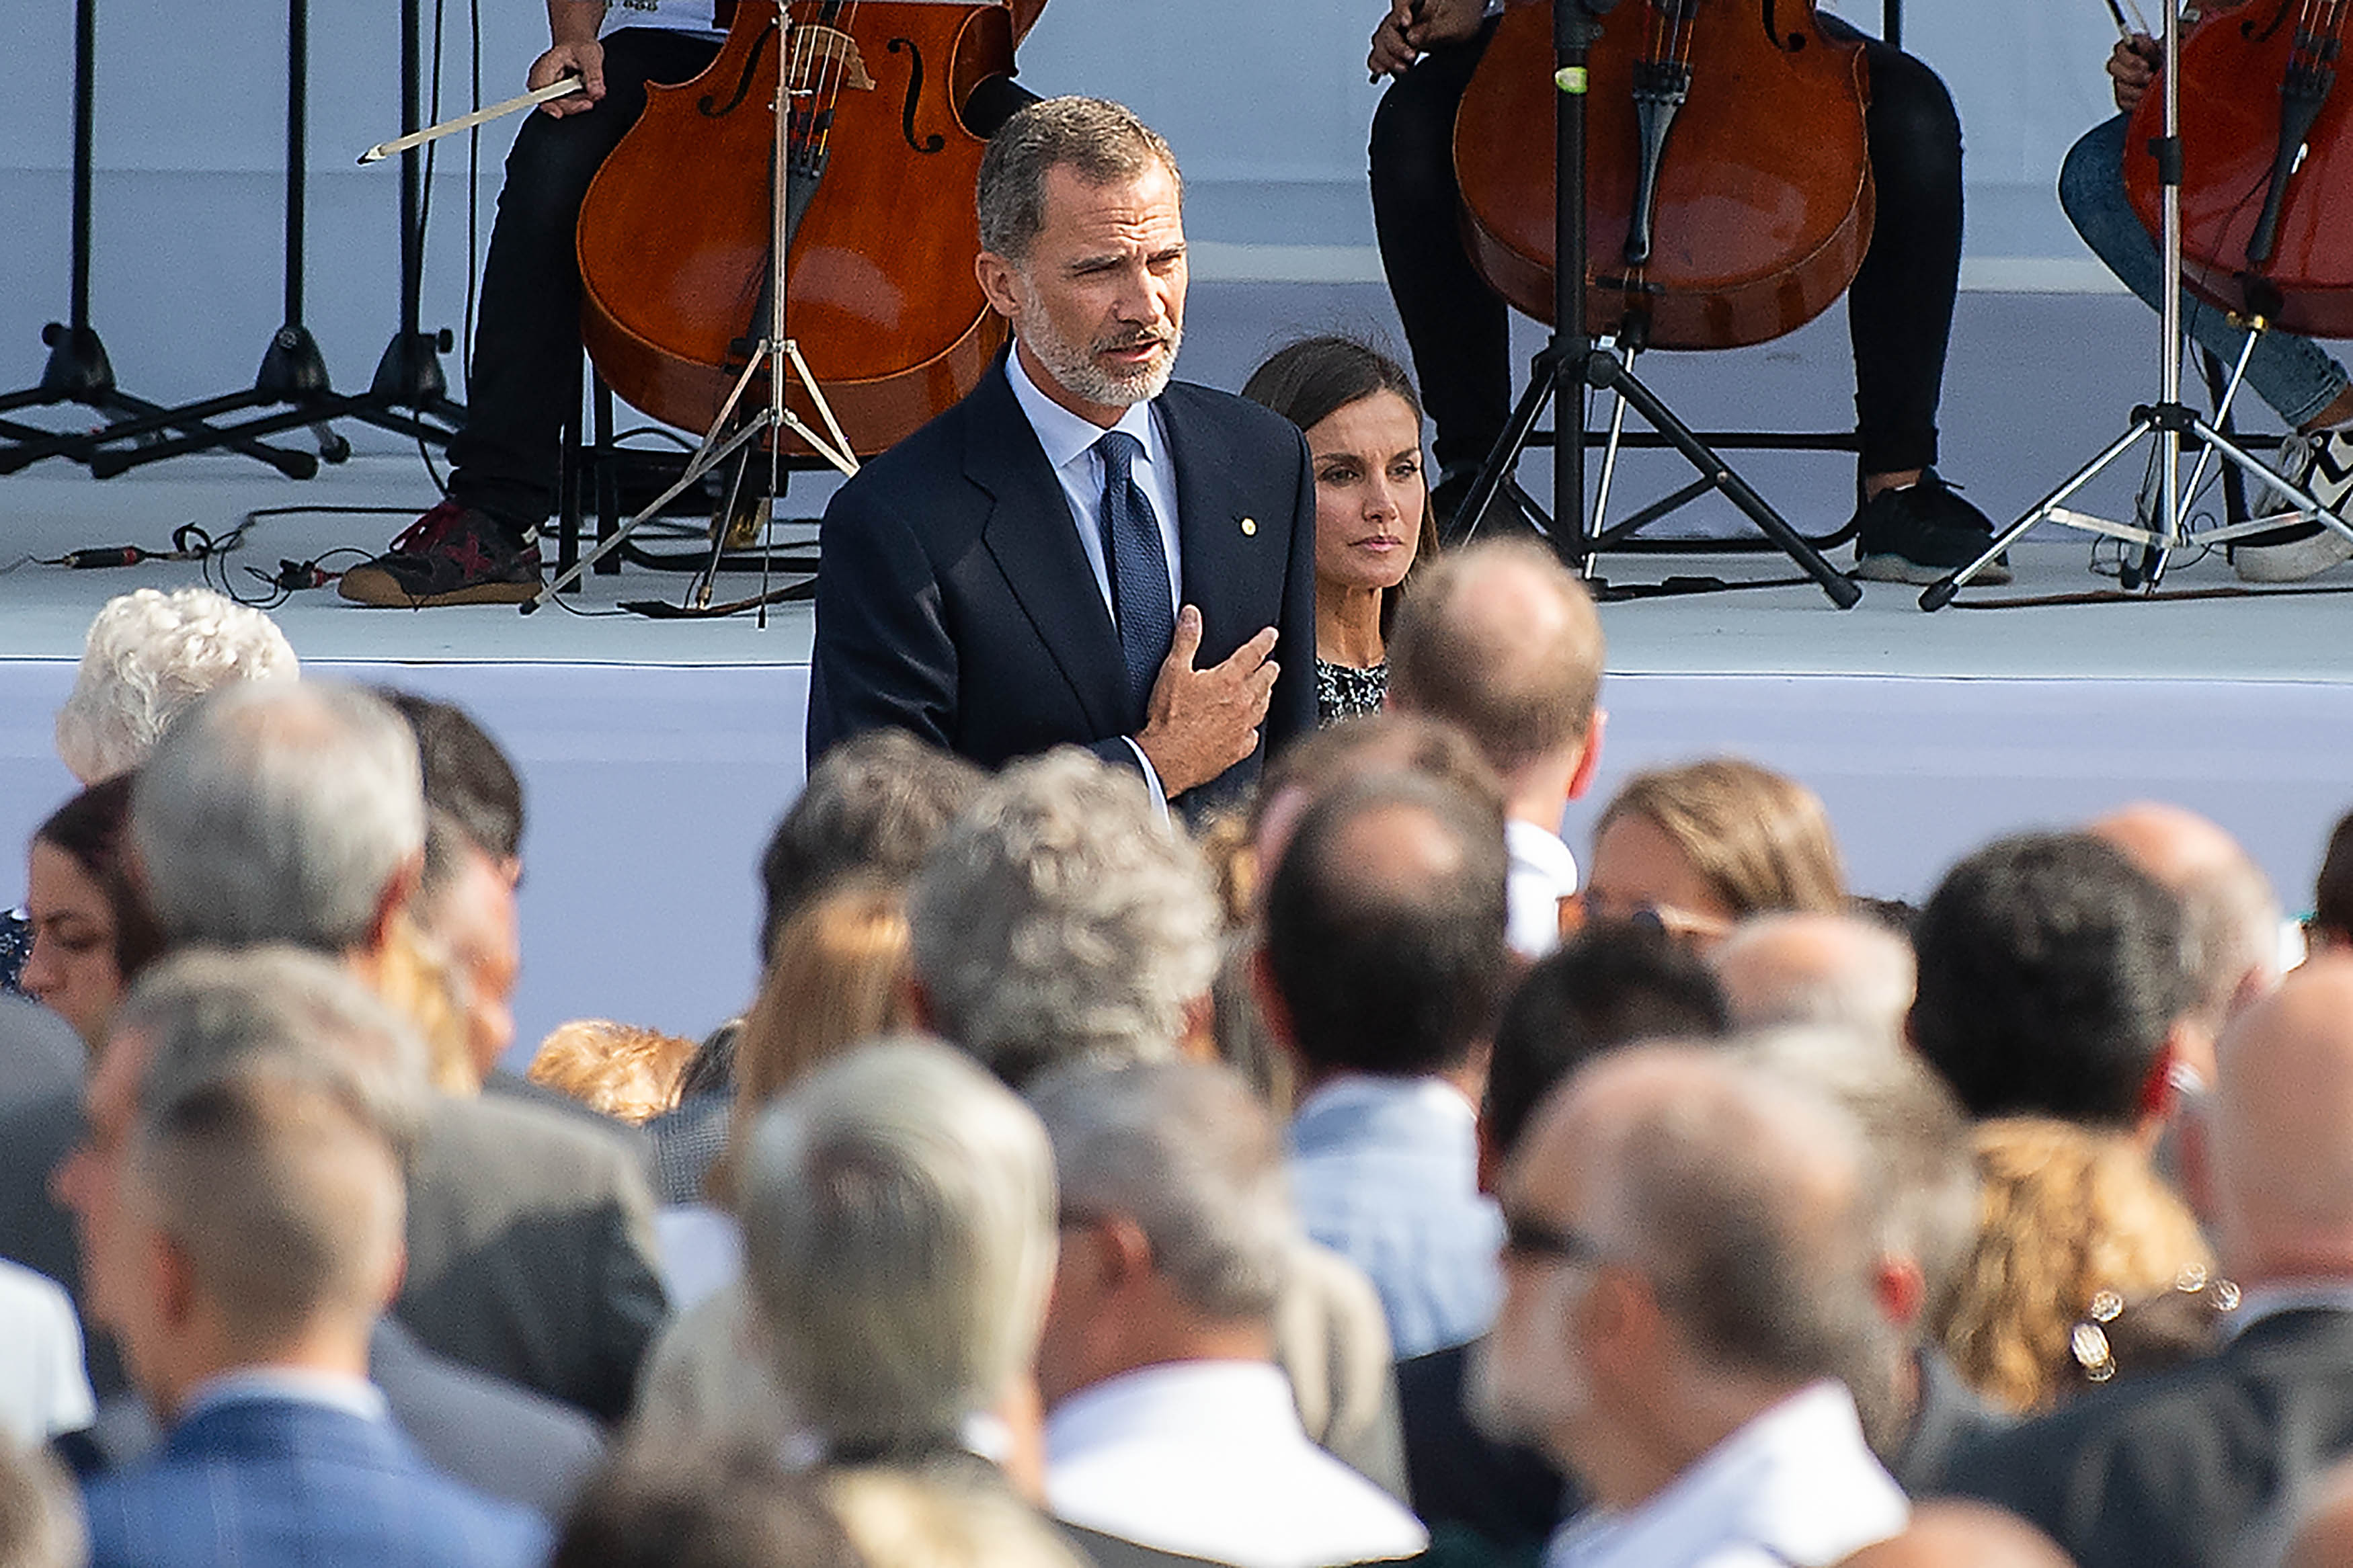 King Felipe VI of Spain and Queen Letizia of Spain arrive at a commemoration ceremony on the first anniversary of the Barcelona and Cambrils terror attacks in Barcelona, Spain on August 17, 2018.